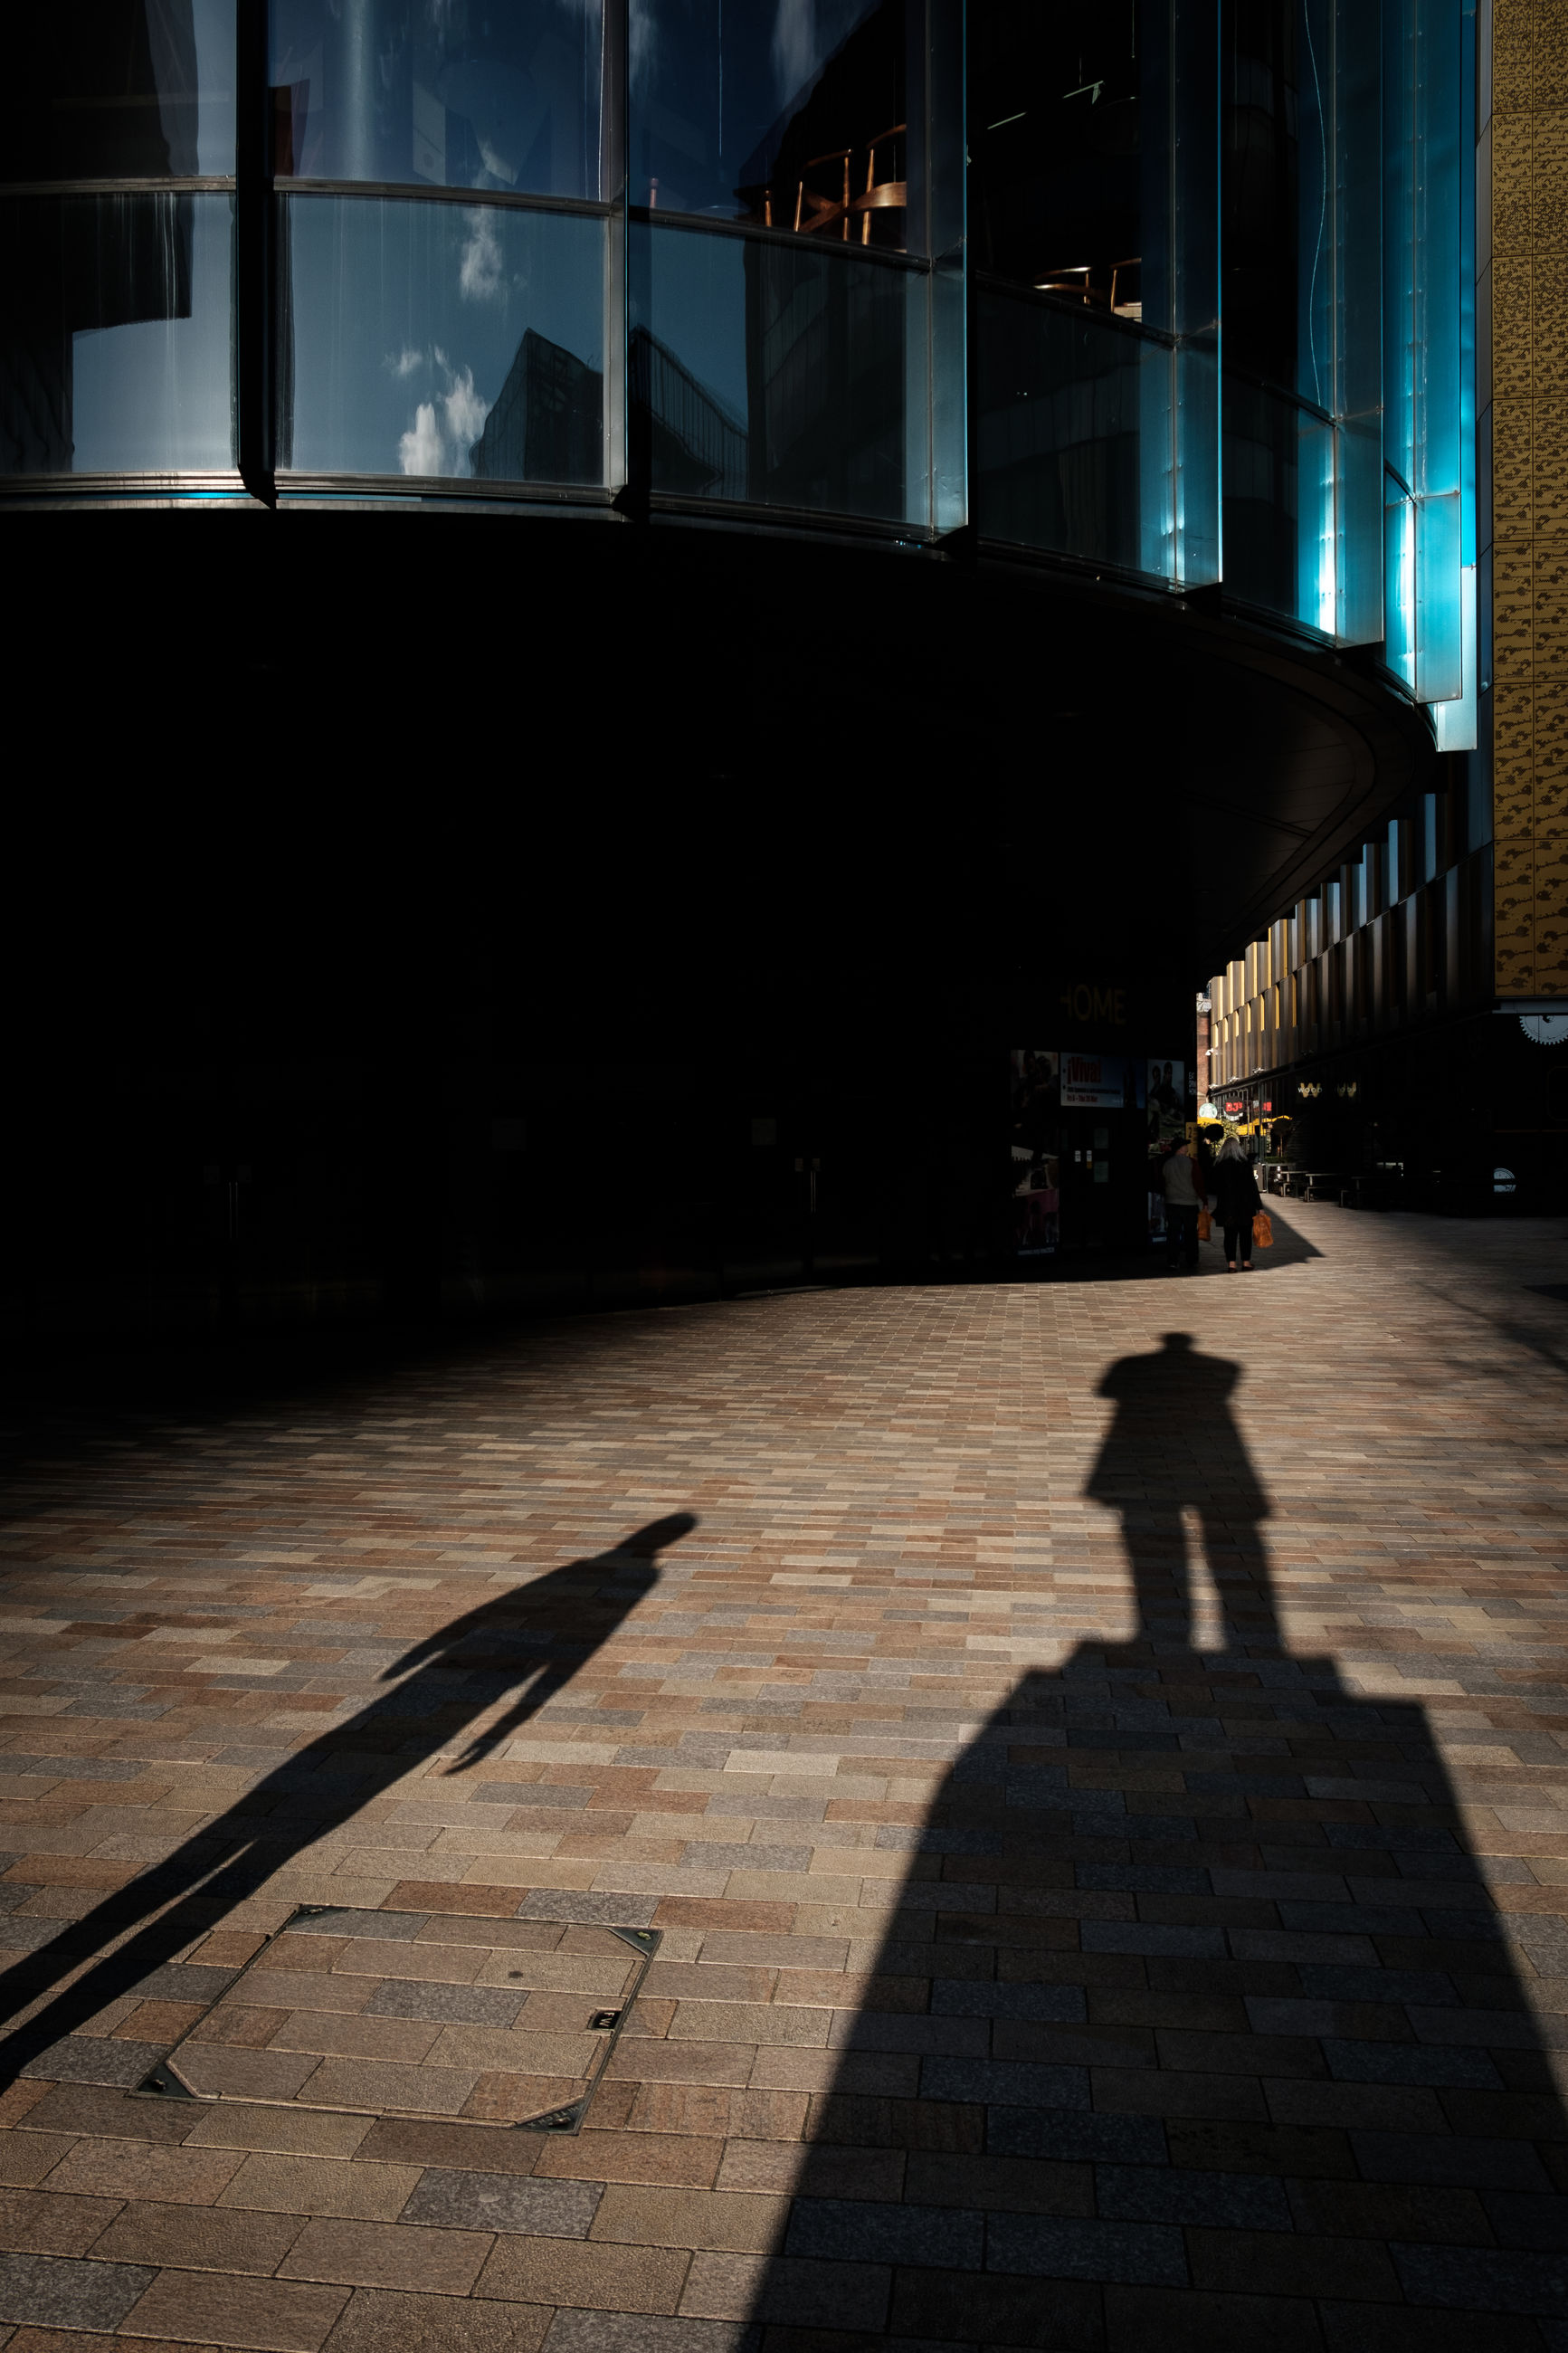 shadow, built structure, architecture, sunlight, building exterior, nature, one person, real people, building, city, lifestyles, footpath, walking, unrecognizable person, street, incidental people, outdoors, focus on shadow, paving stone